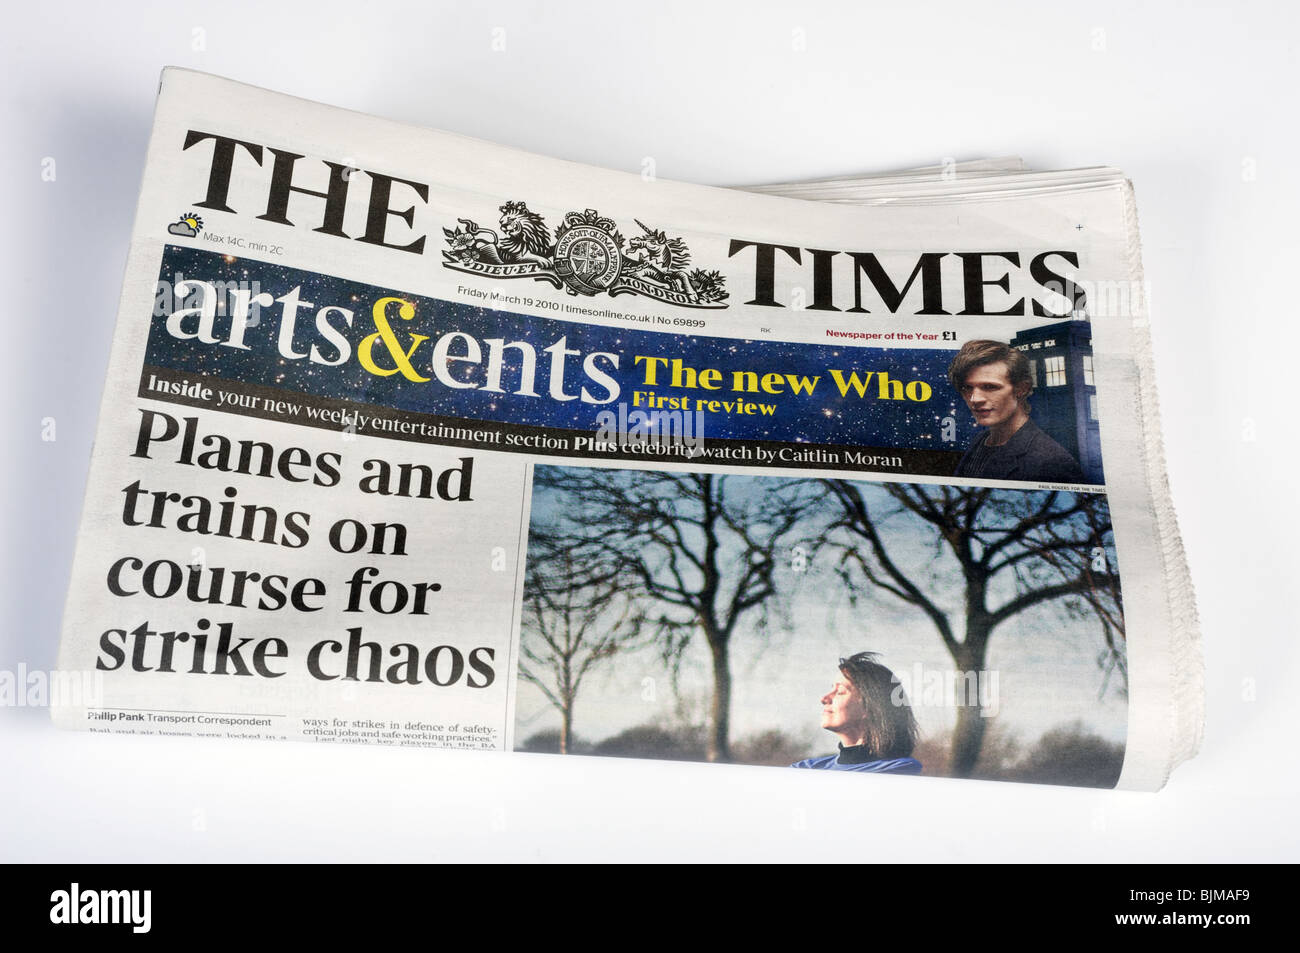 The Times newspaper - Stock Image